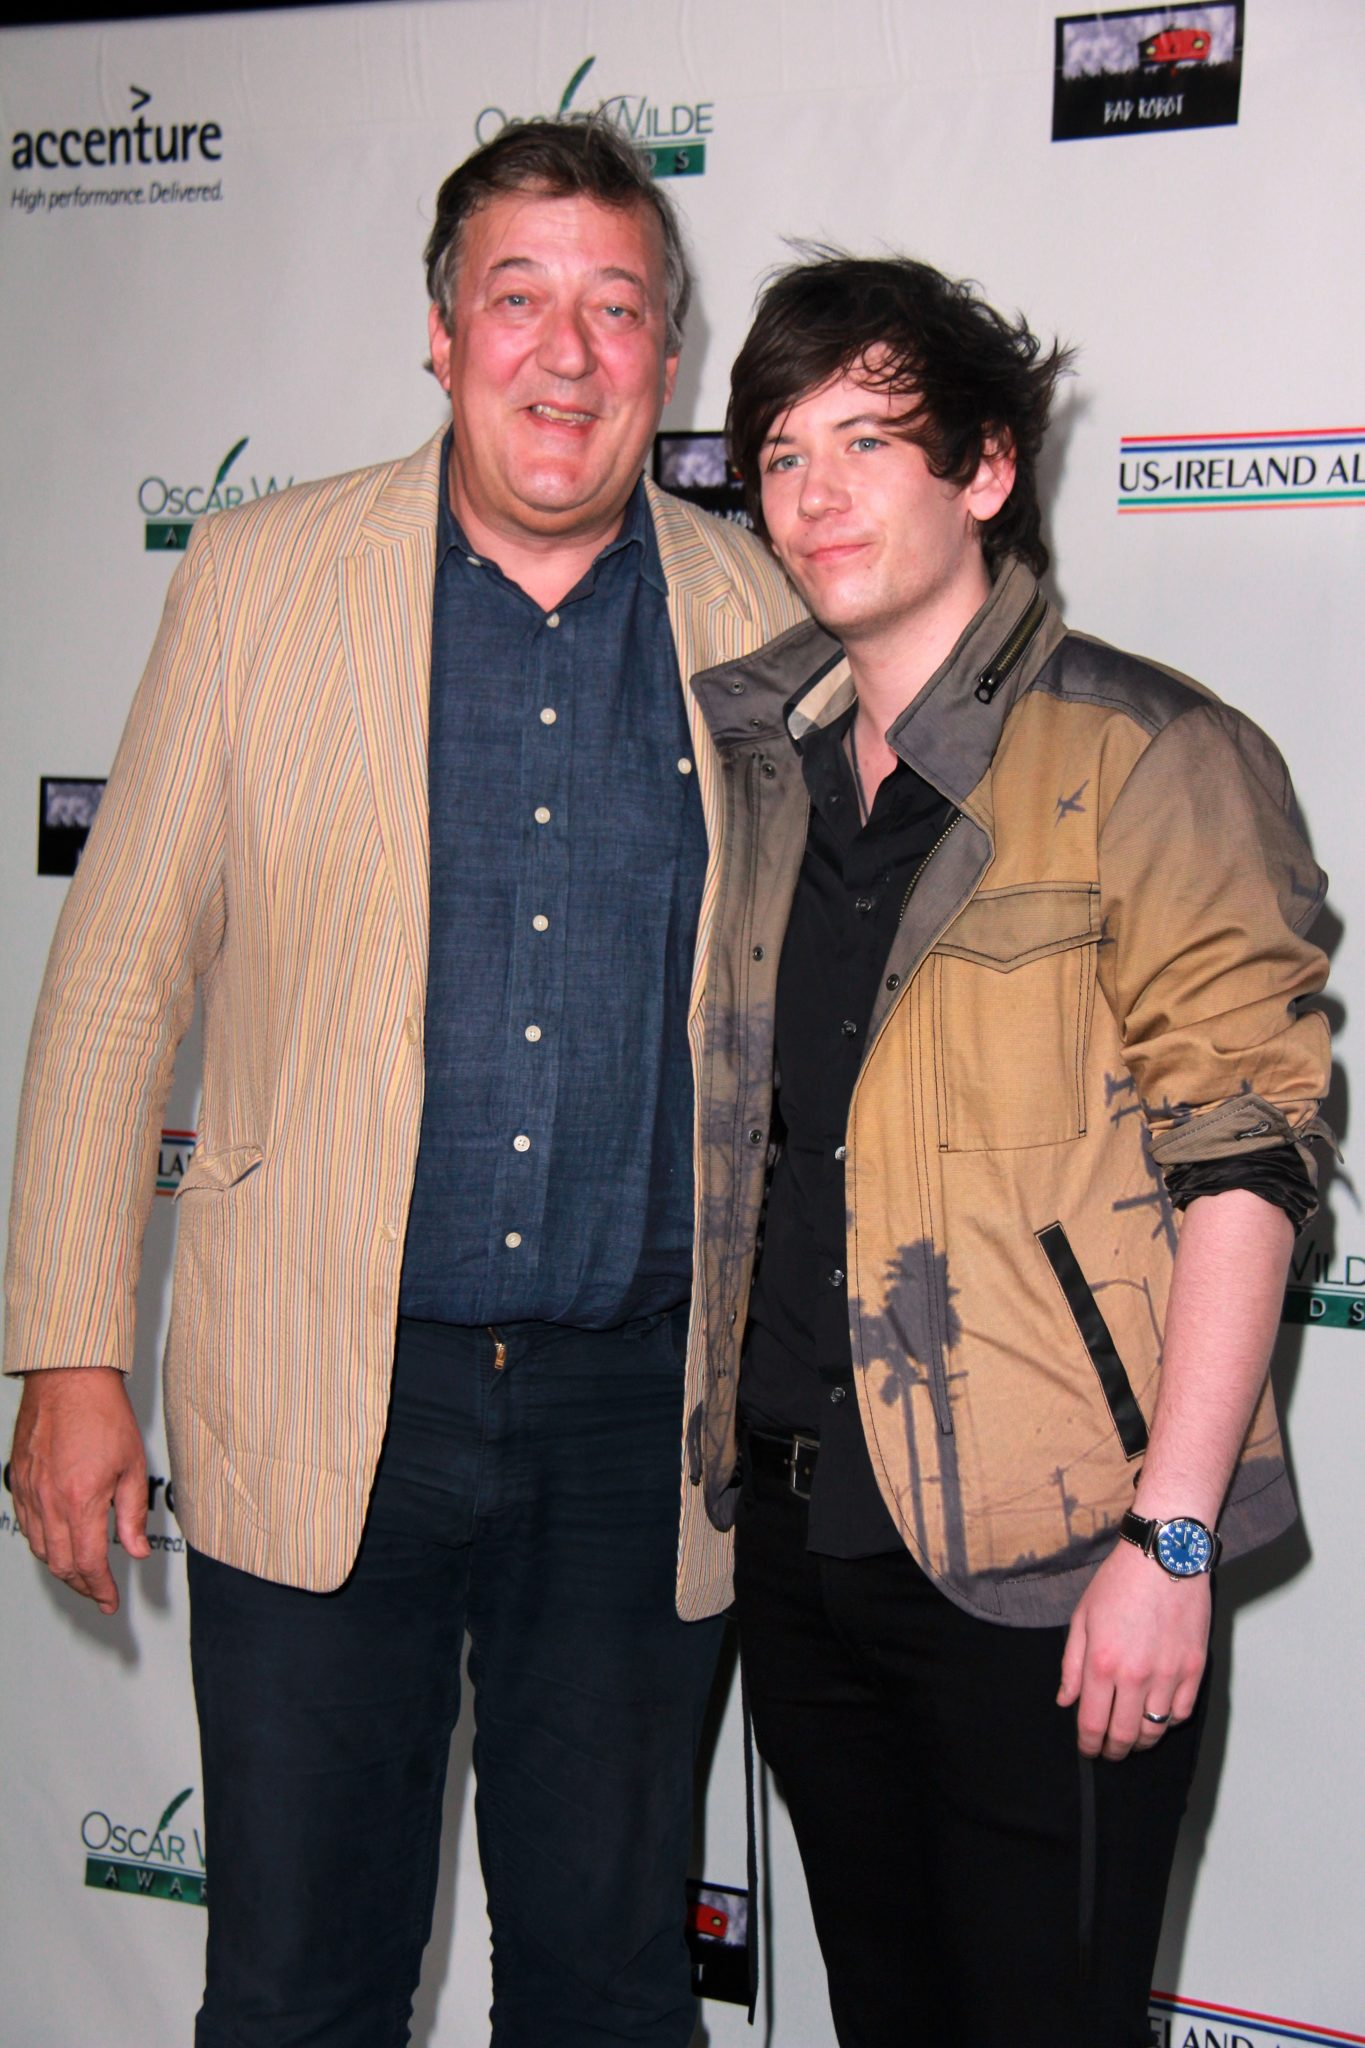 What's the age gap between Stephen Fry and Elliot Spencer